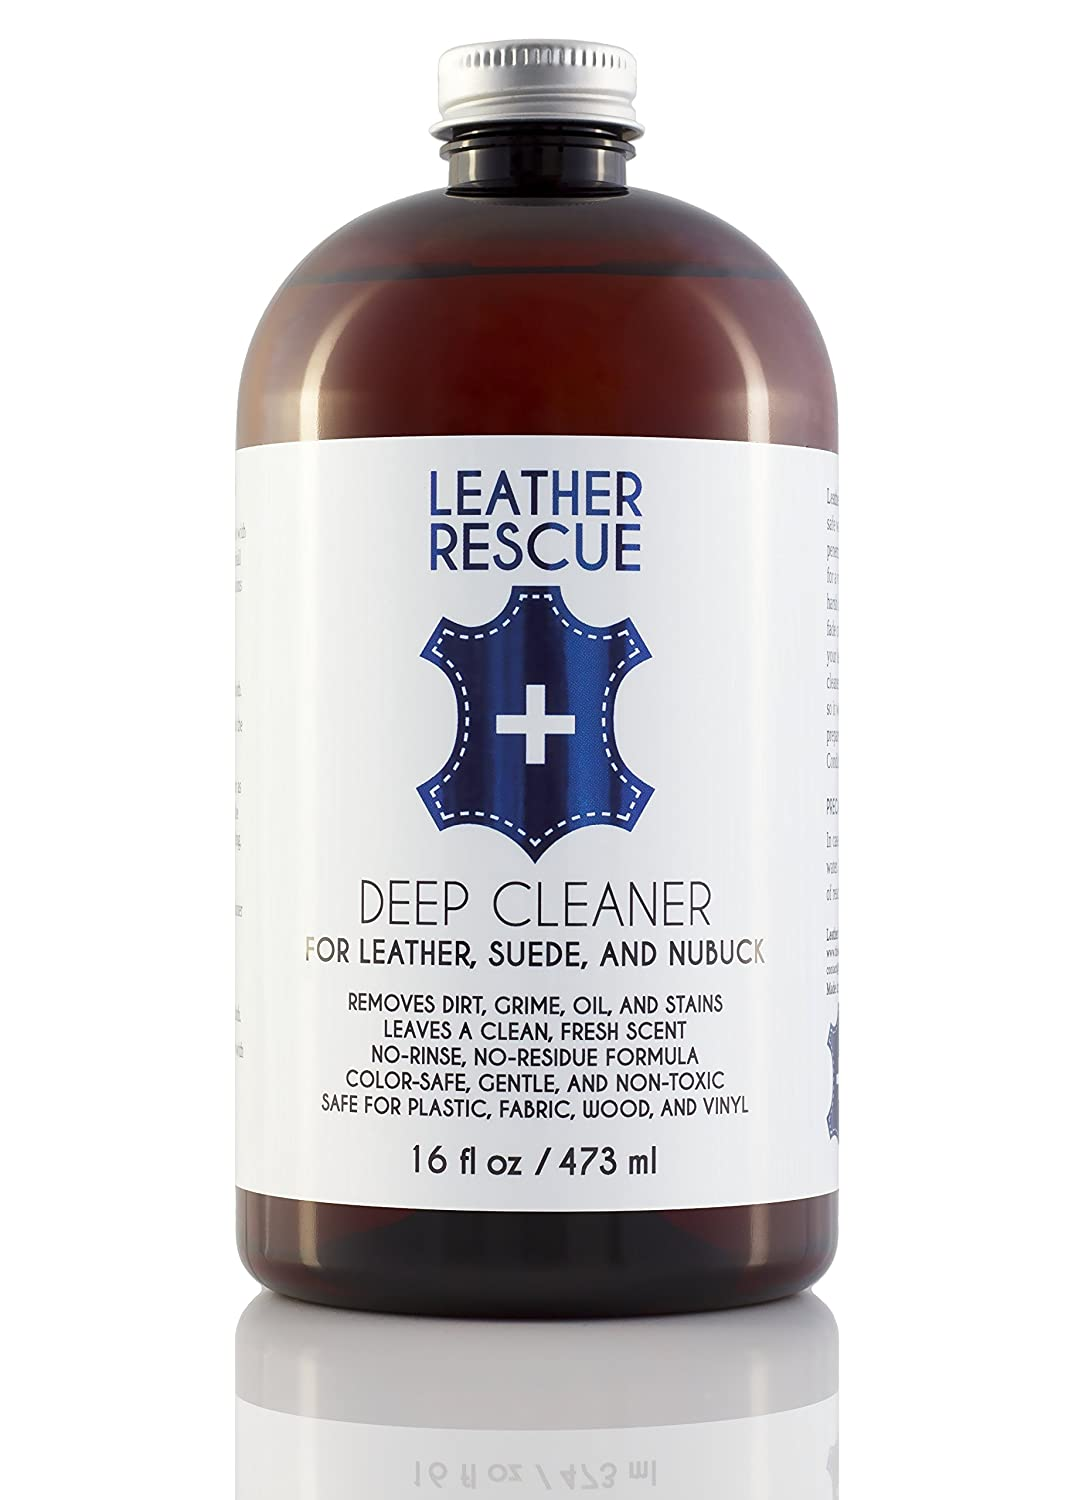 The Best Leather & Suede Car Care Products Your Vehicle Needs In 2020 13